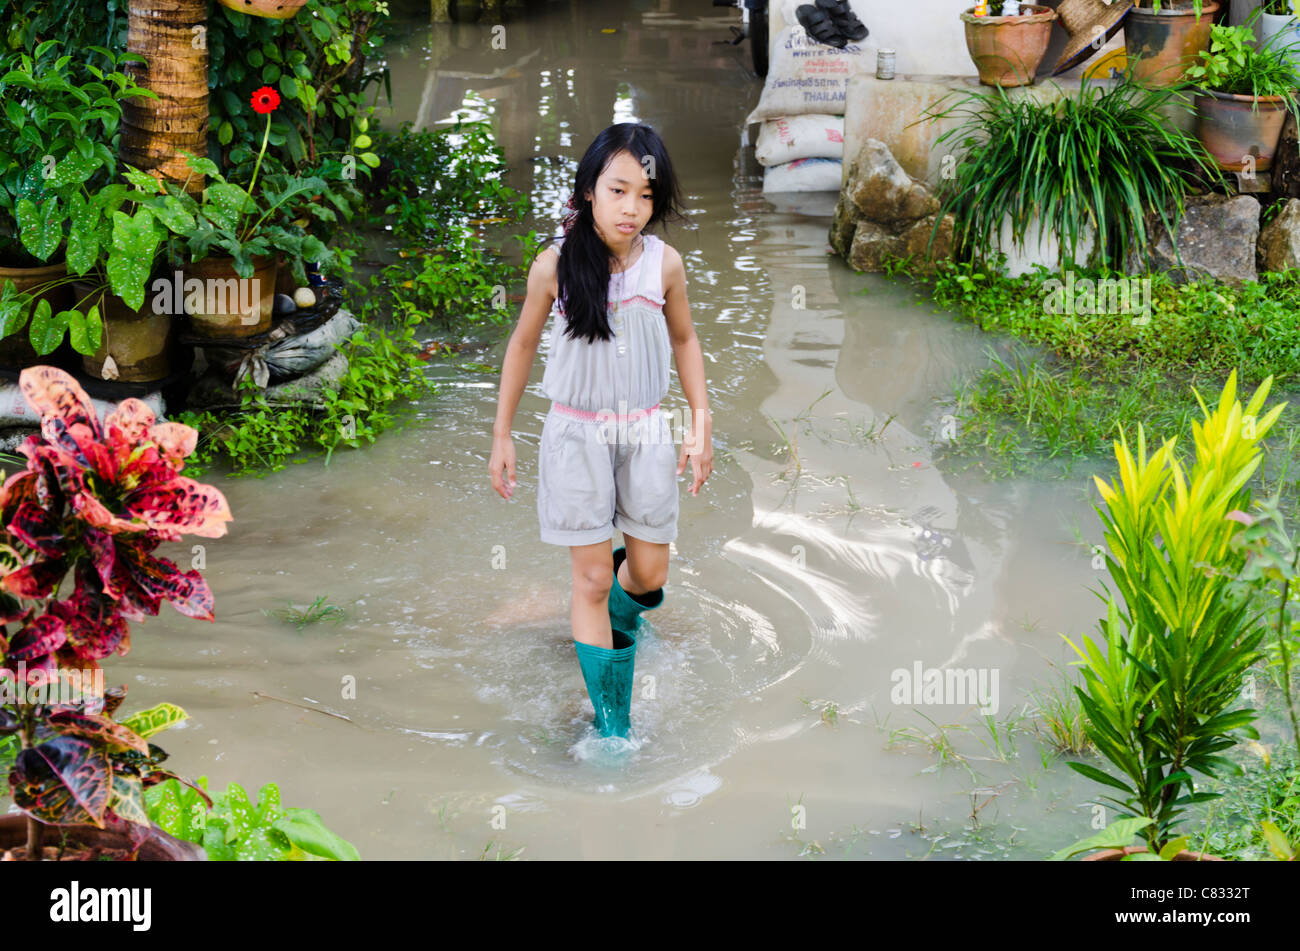 A Cute 9 Year Old Asian Girl With Long Black Hair Wearing Boots